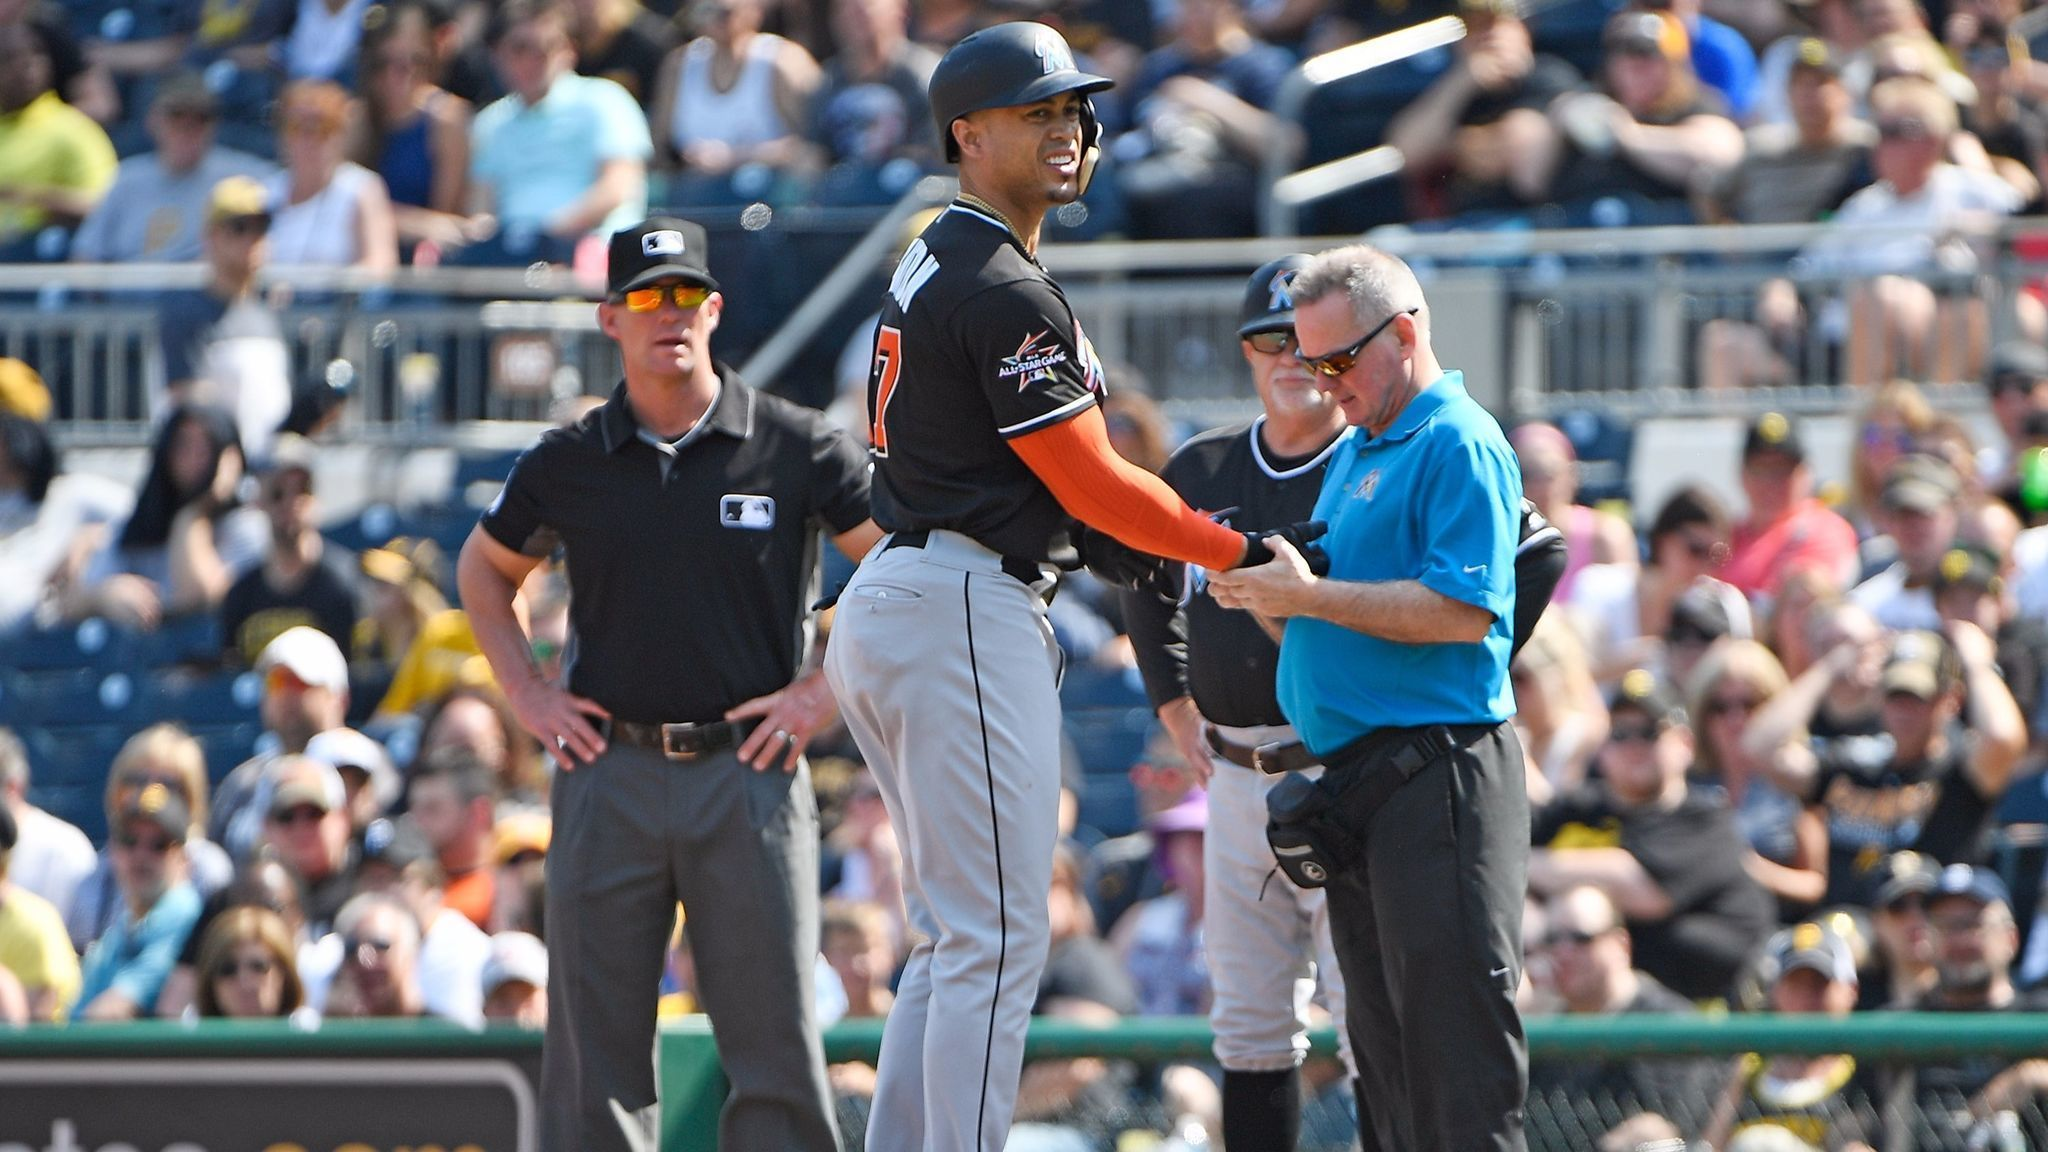 Marlins Giancarlo Stanton On Bruised Right Wrist After